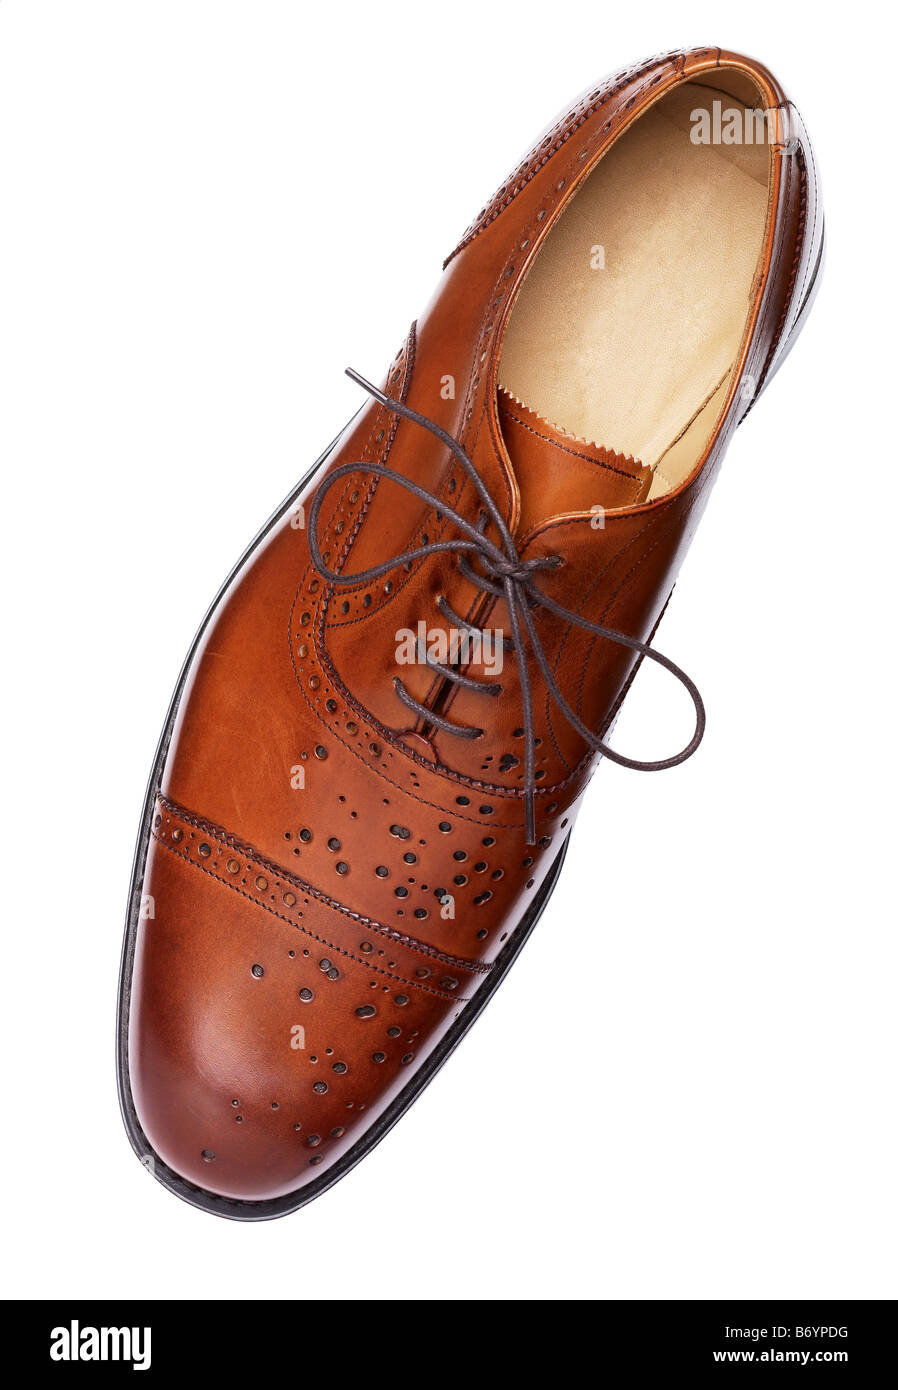 Brown leather brogue shoe - Stock Image